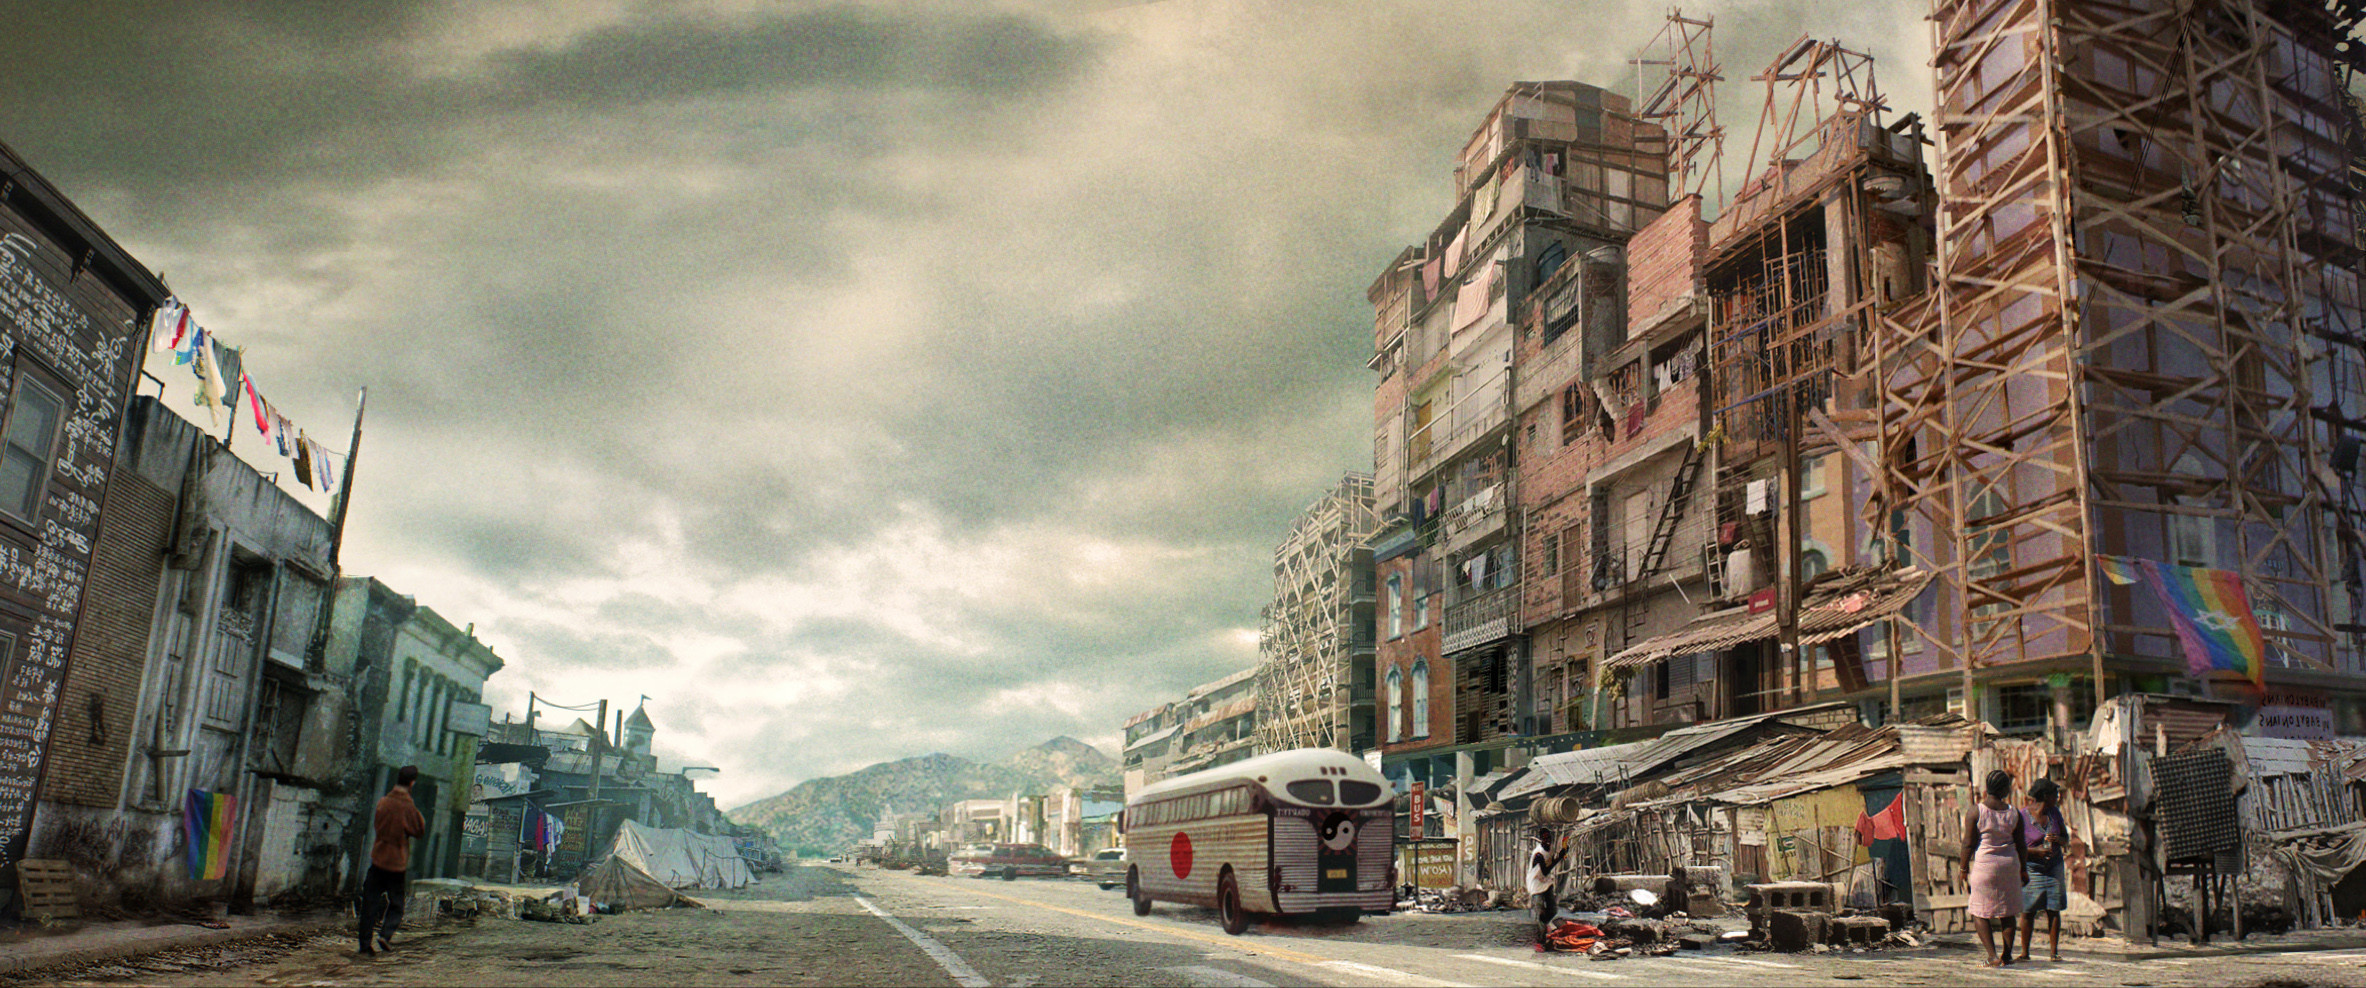 Concept Art for Canon City in Axis occupied America. Placed in the middle between the Nazi and the Japanese protectorates, the town has become a home for all the outcast and refugees from the two dictatorships.